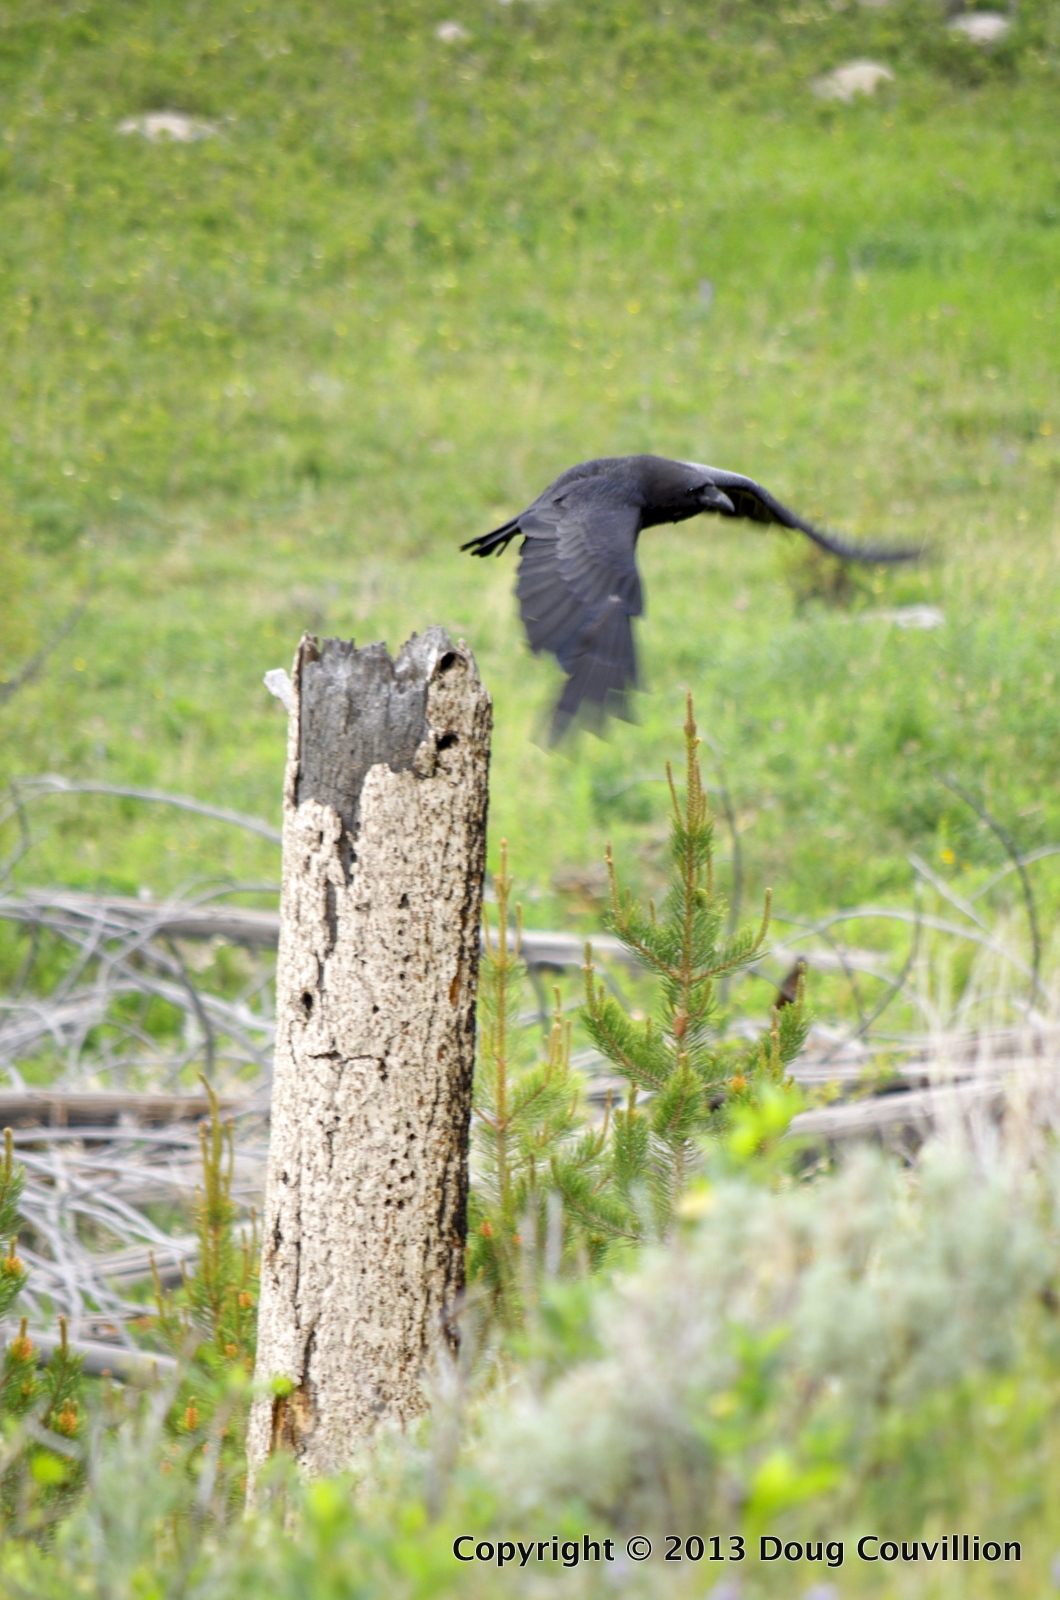 photograph of a raven taking off from a tree stump